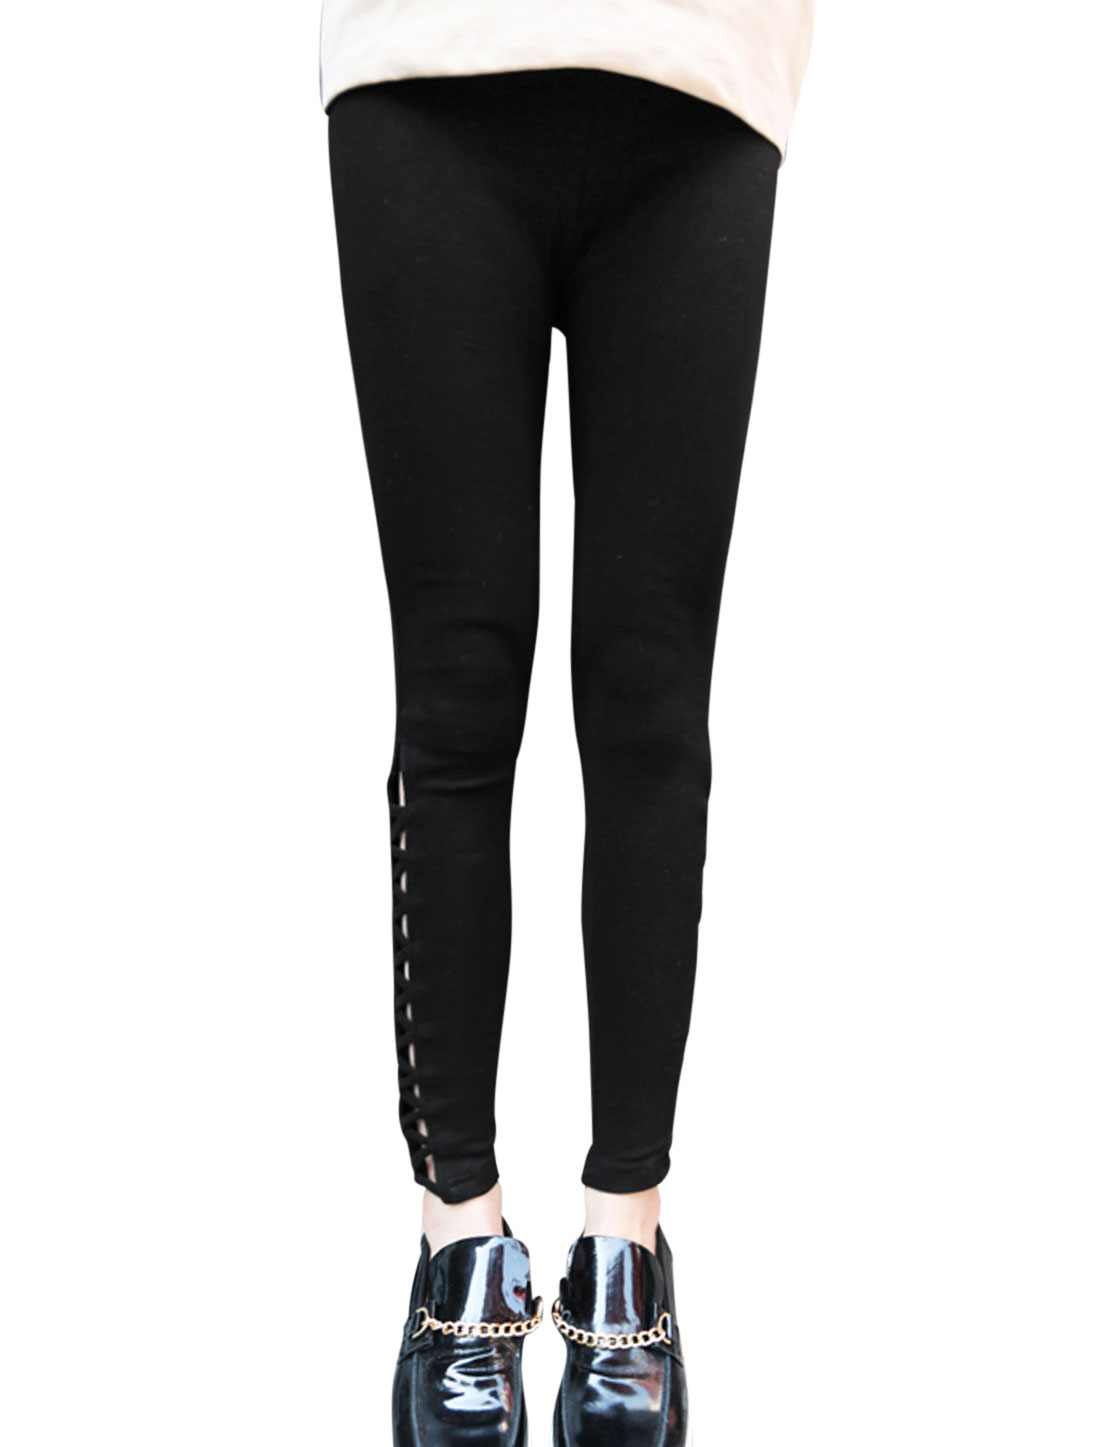 Lady Elastic Waist Hollow Out Cross Side Casual Leggings Black XS